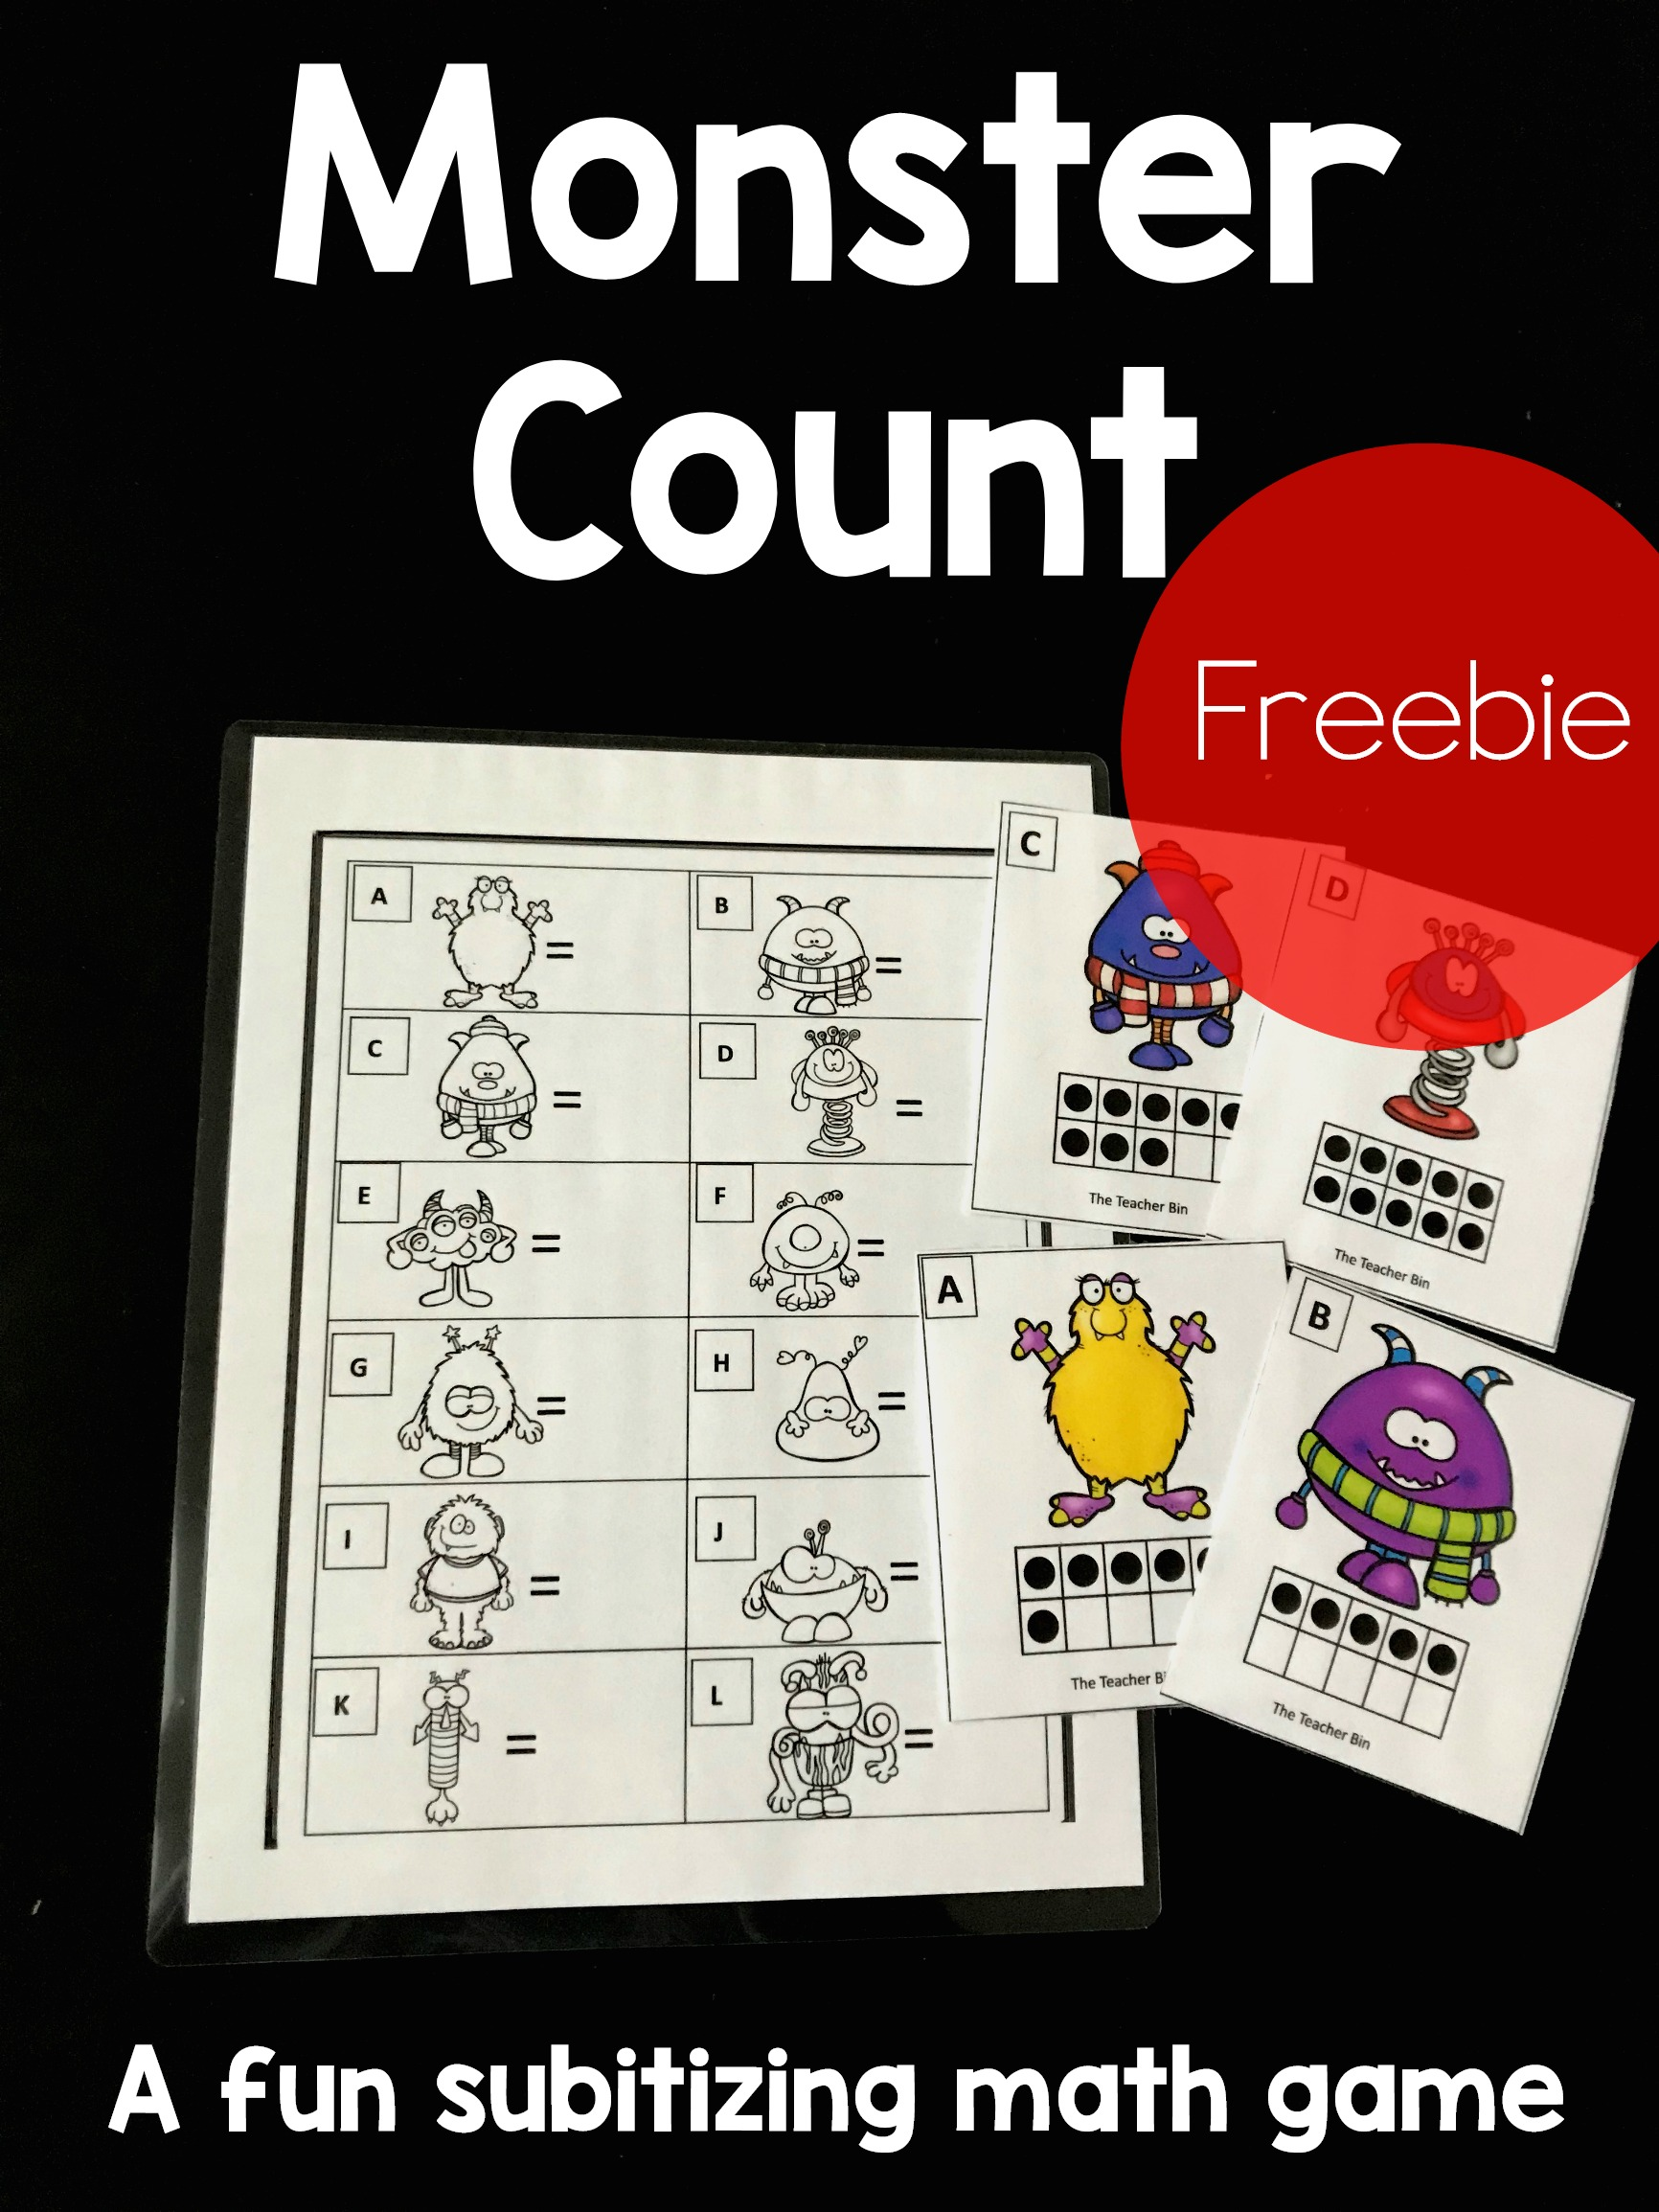 A fun kindergarten subitizing math game for Kindergarteners. A monster themed game to help kindergarteners recognize a group rapidly, specially groups of numbers.